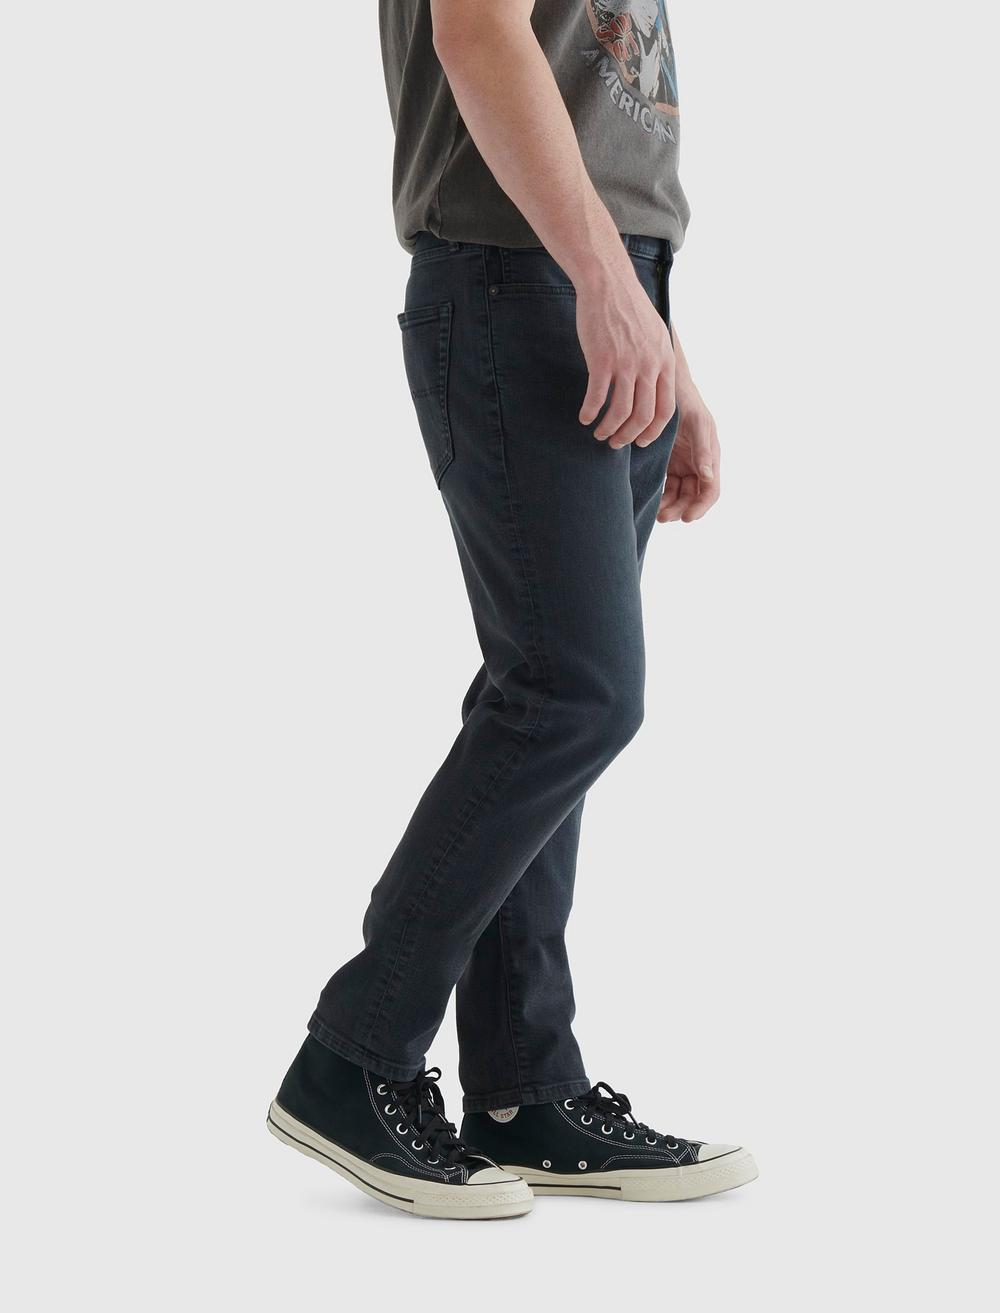 411 ATHLETIC TAPER ADVANCED STRETCH JEAN, image 3